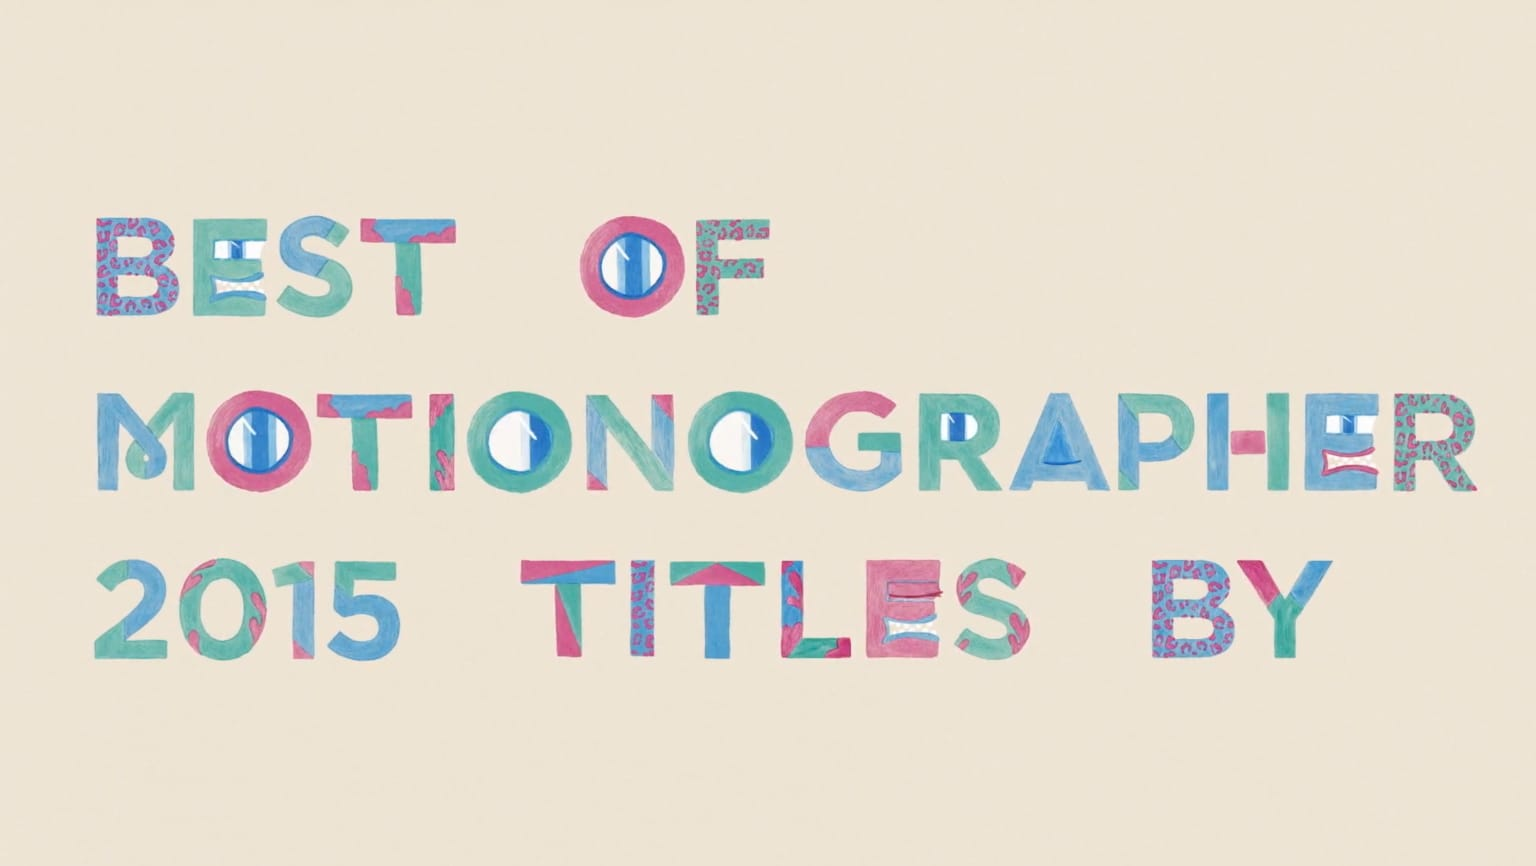 Best of Motionographer Titles for F5 Festival